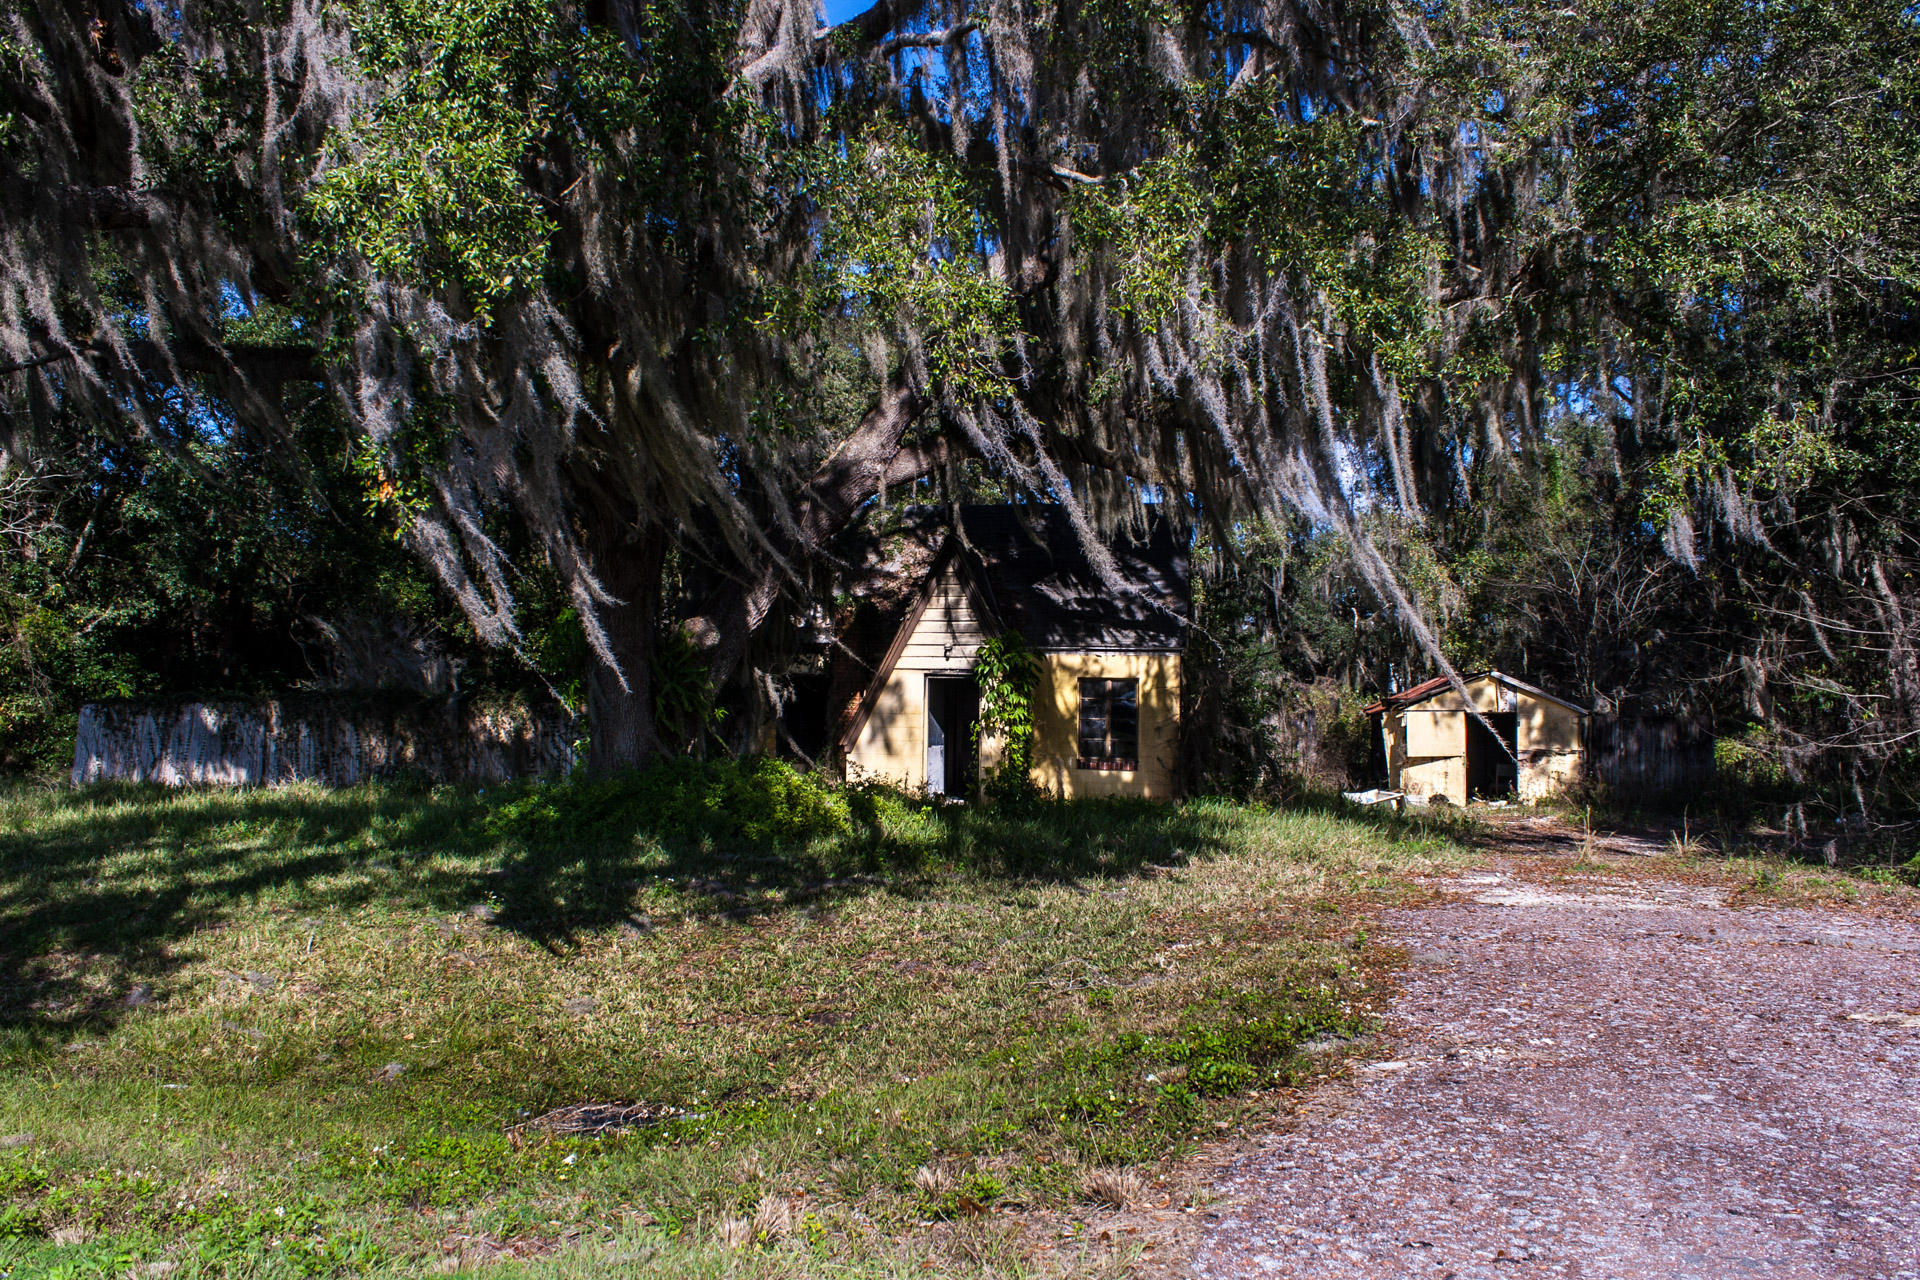 Leesburg, Florida - Wispy Tree House (front far)